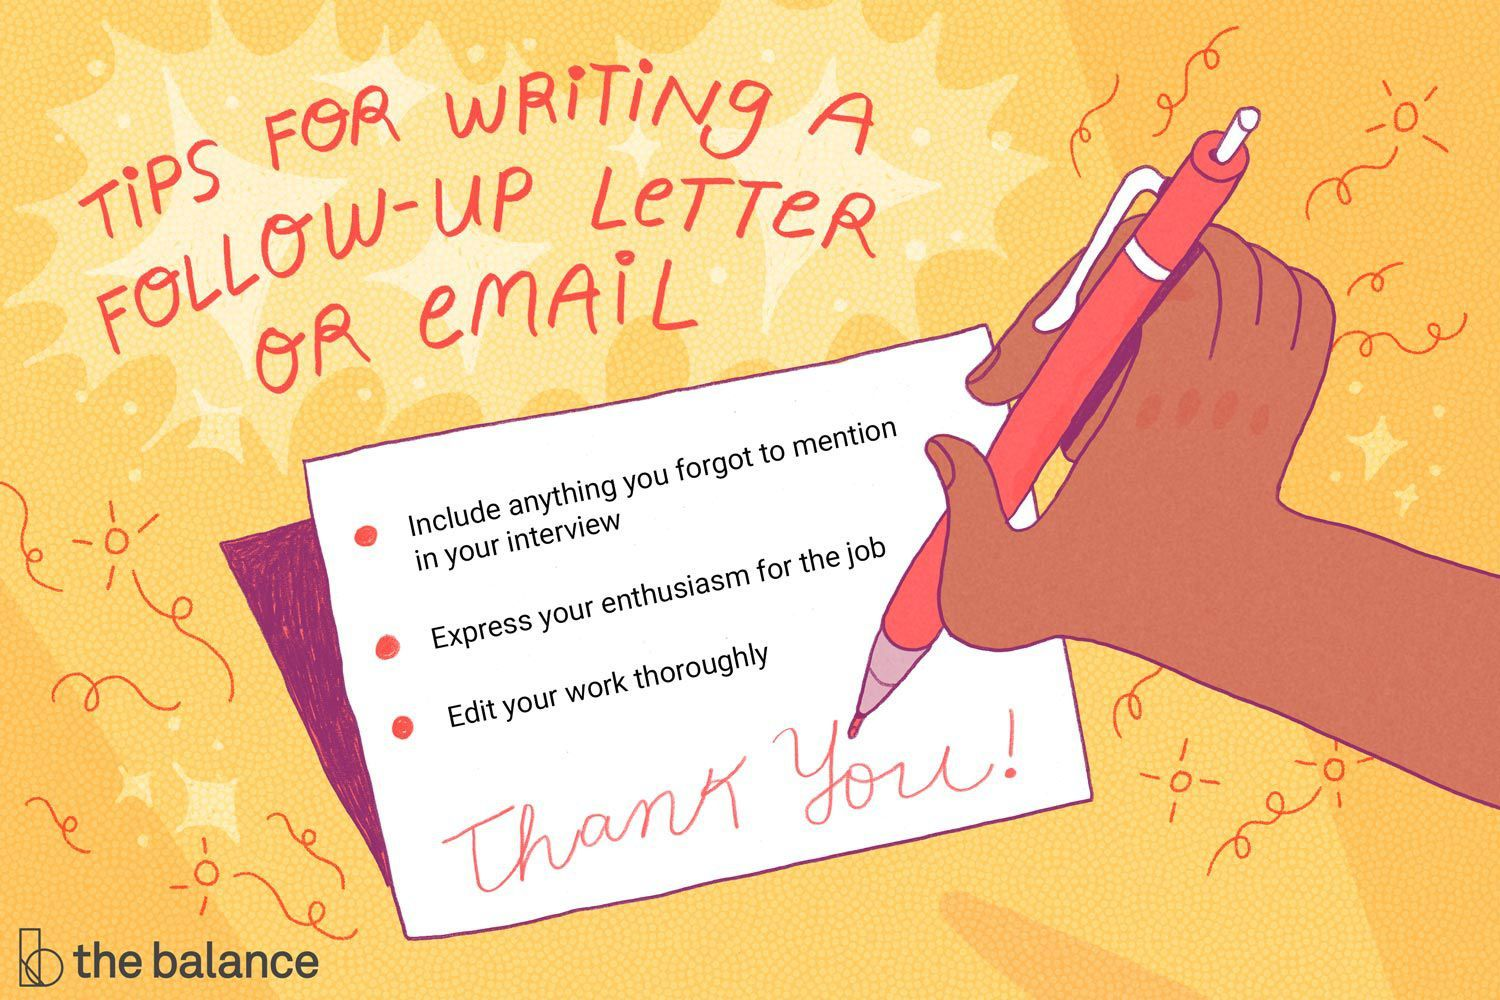 005 Stupendou Write Follow Up Email After No Response Highest Clarity Full